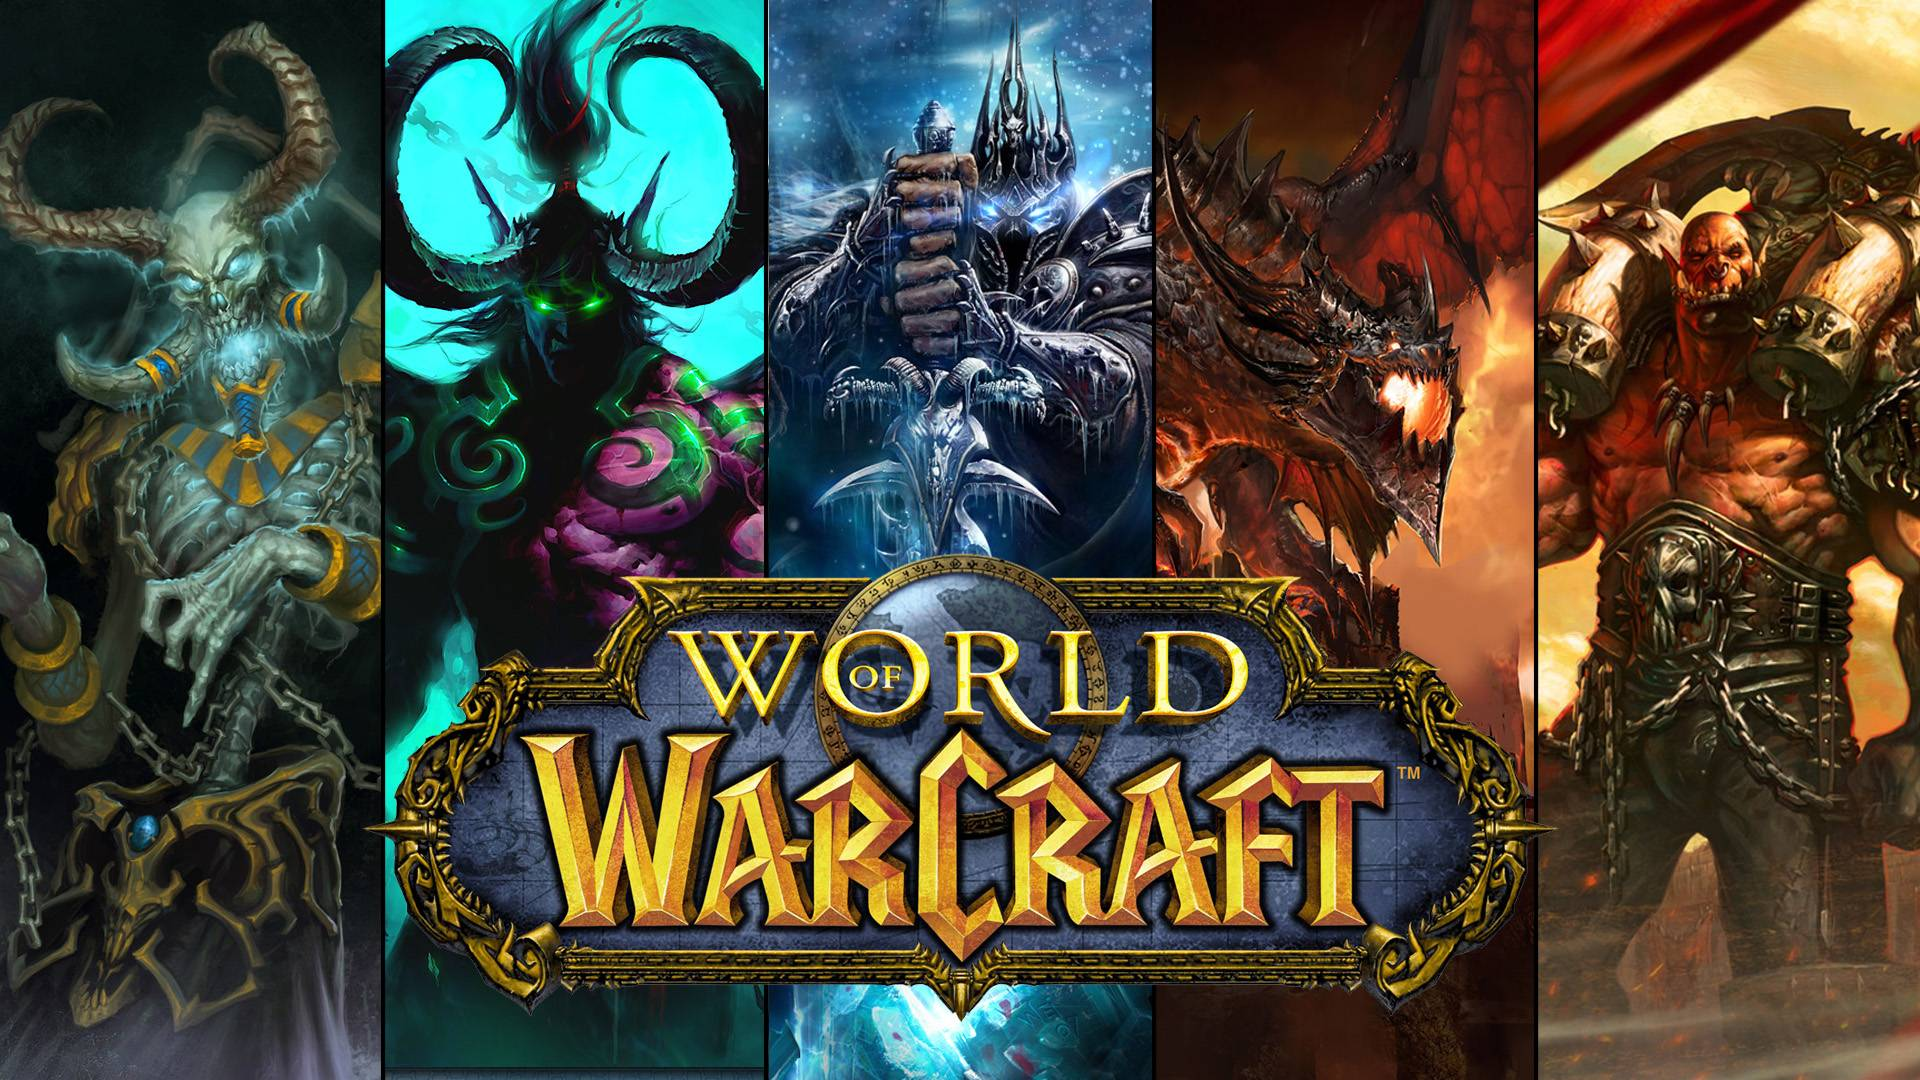 World of warcraft Wallpapers HD, Desktop Backgrounds, Images and 1920x1080